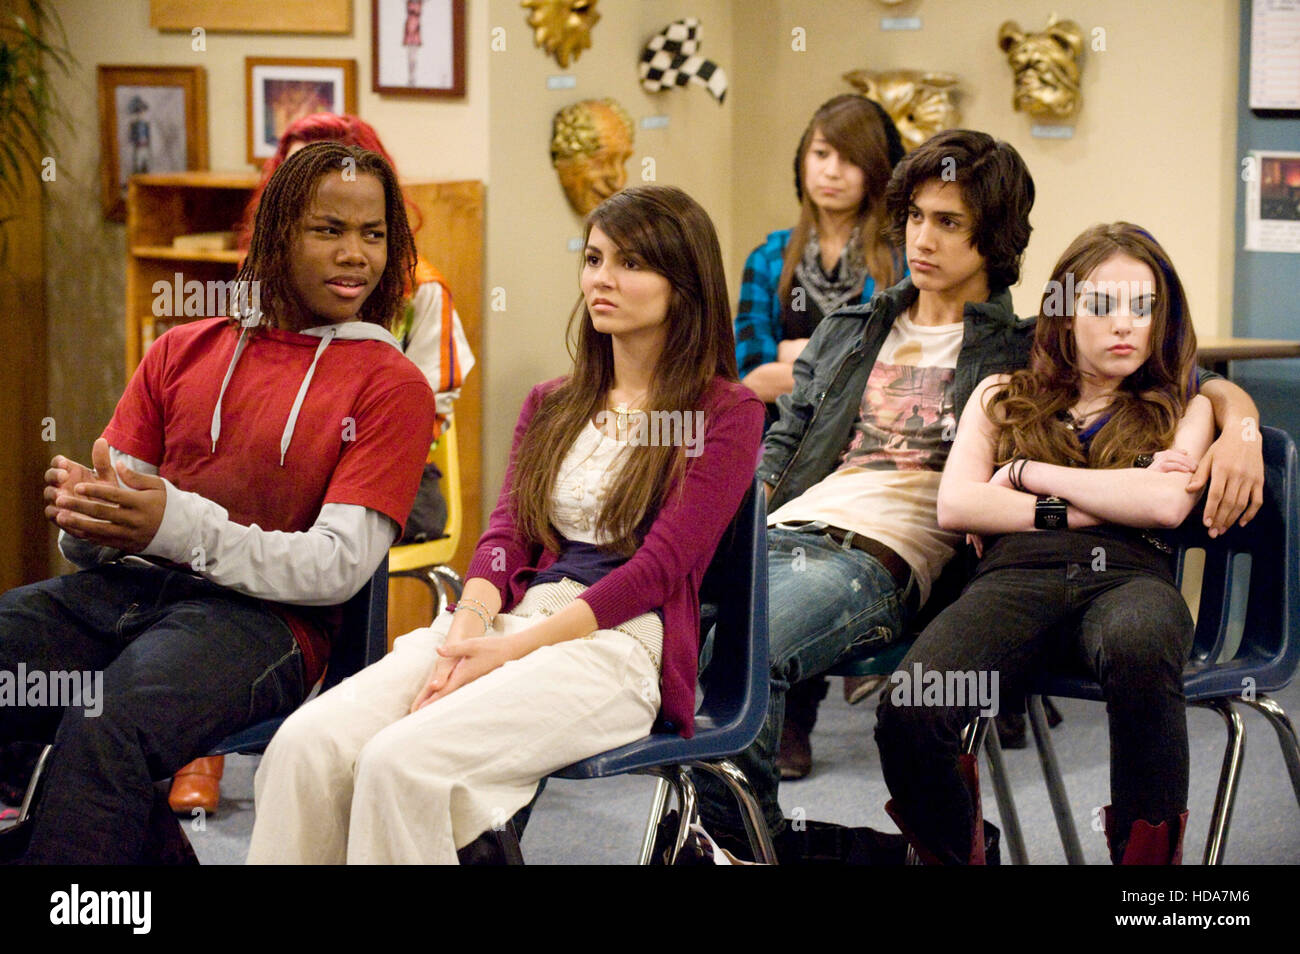 Victorious From Left Leon Thomas Victoria Justice Avan Jogia Stock Photo Alamy